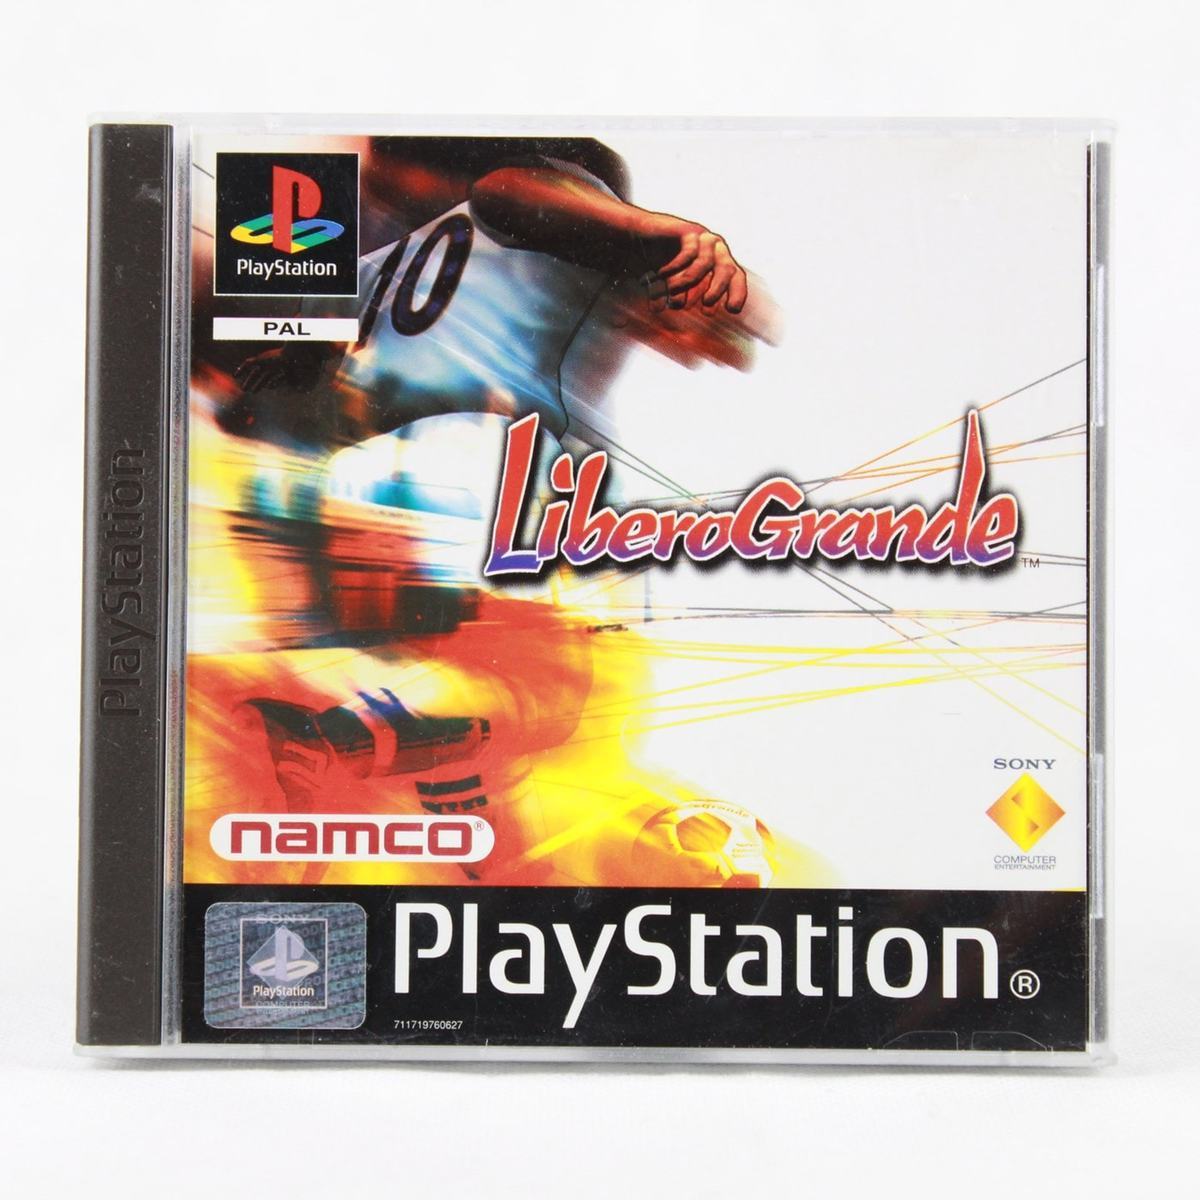 LiberoGrande (Playstation 1)